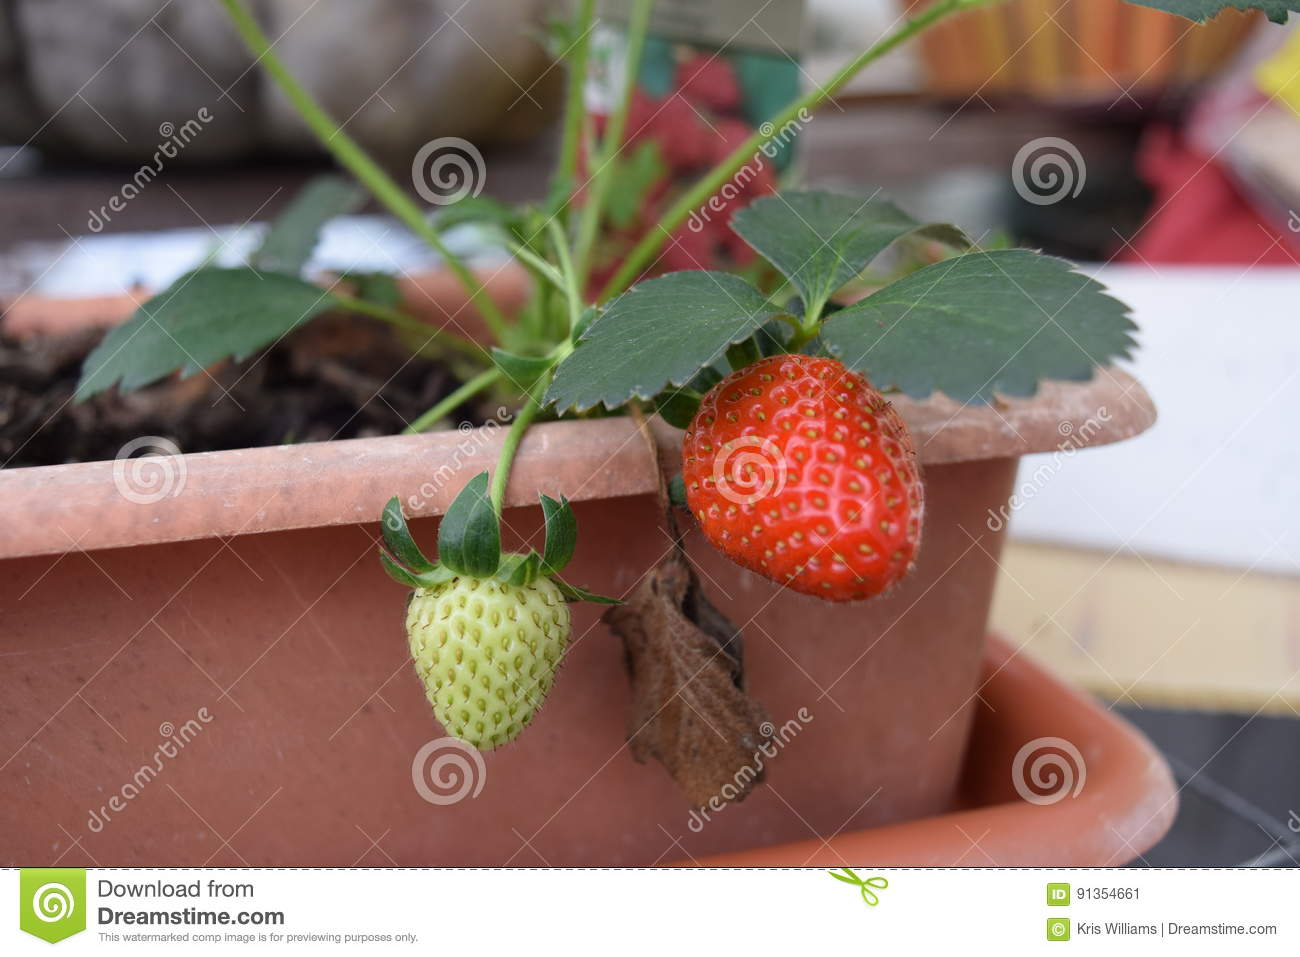 Growing strawberry from a container plant